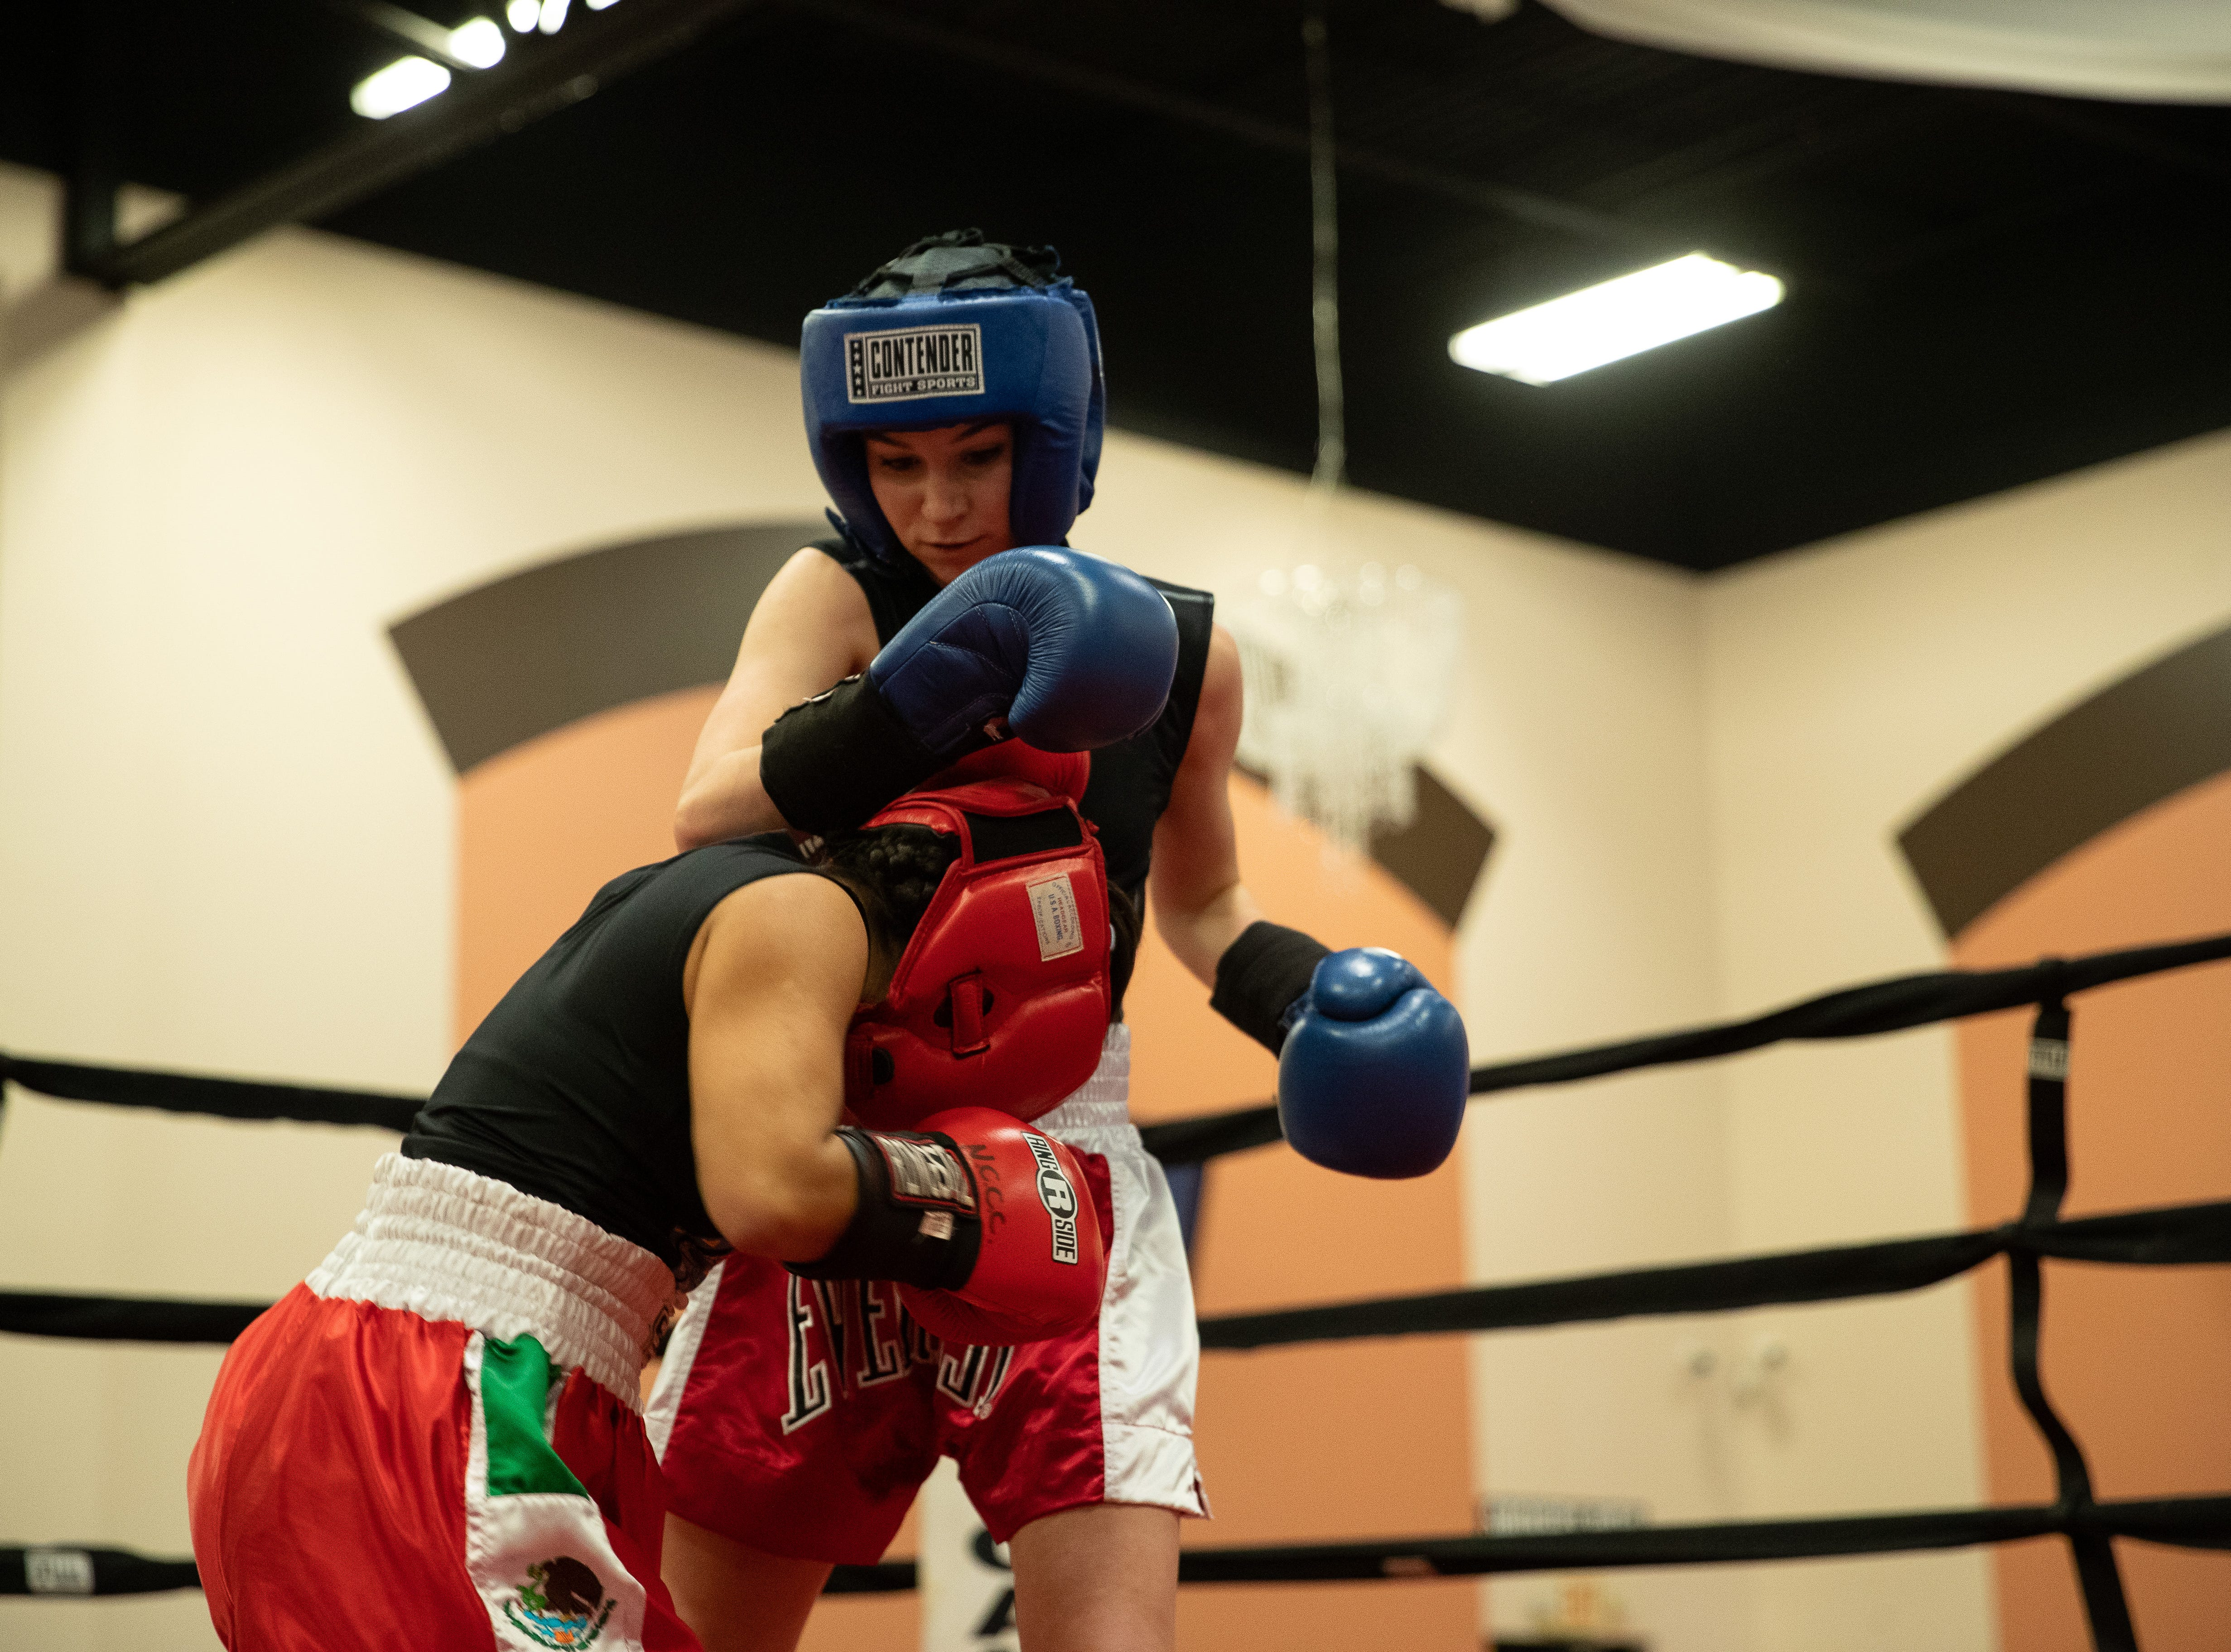 Zoey Rodriquez vs Braylee Fauth during the regional golden gloves tournament at the Valencia on Saturday, Feb. 9, 2019.